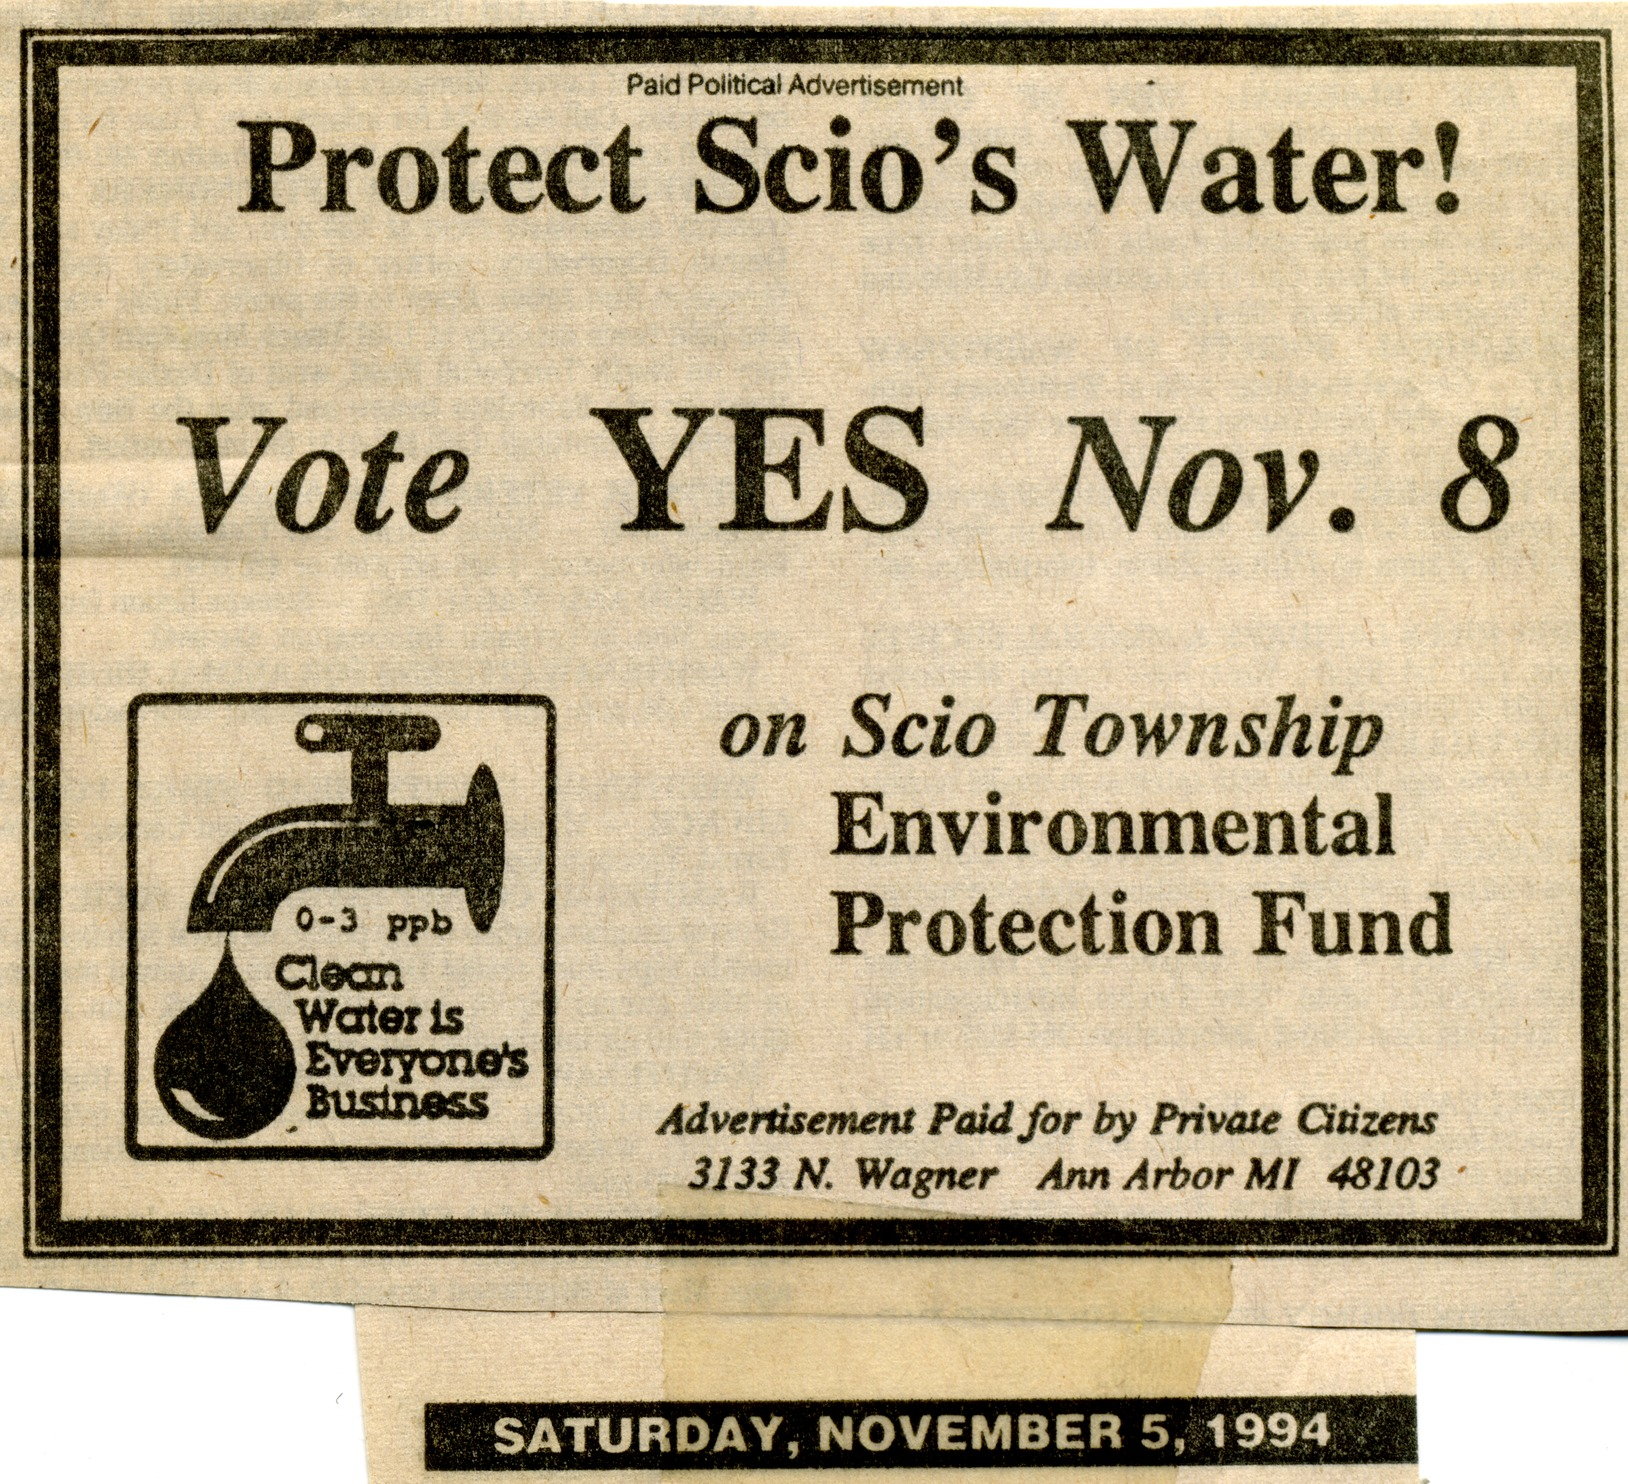 Protect Scio's Water! image